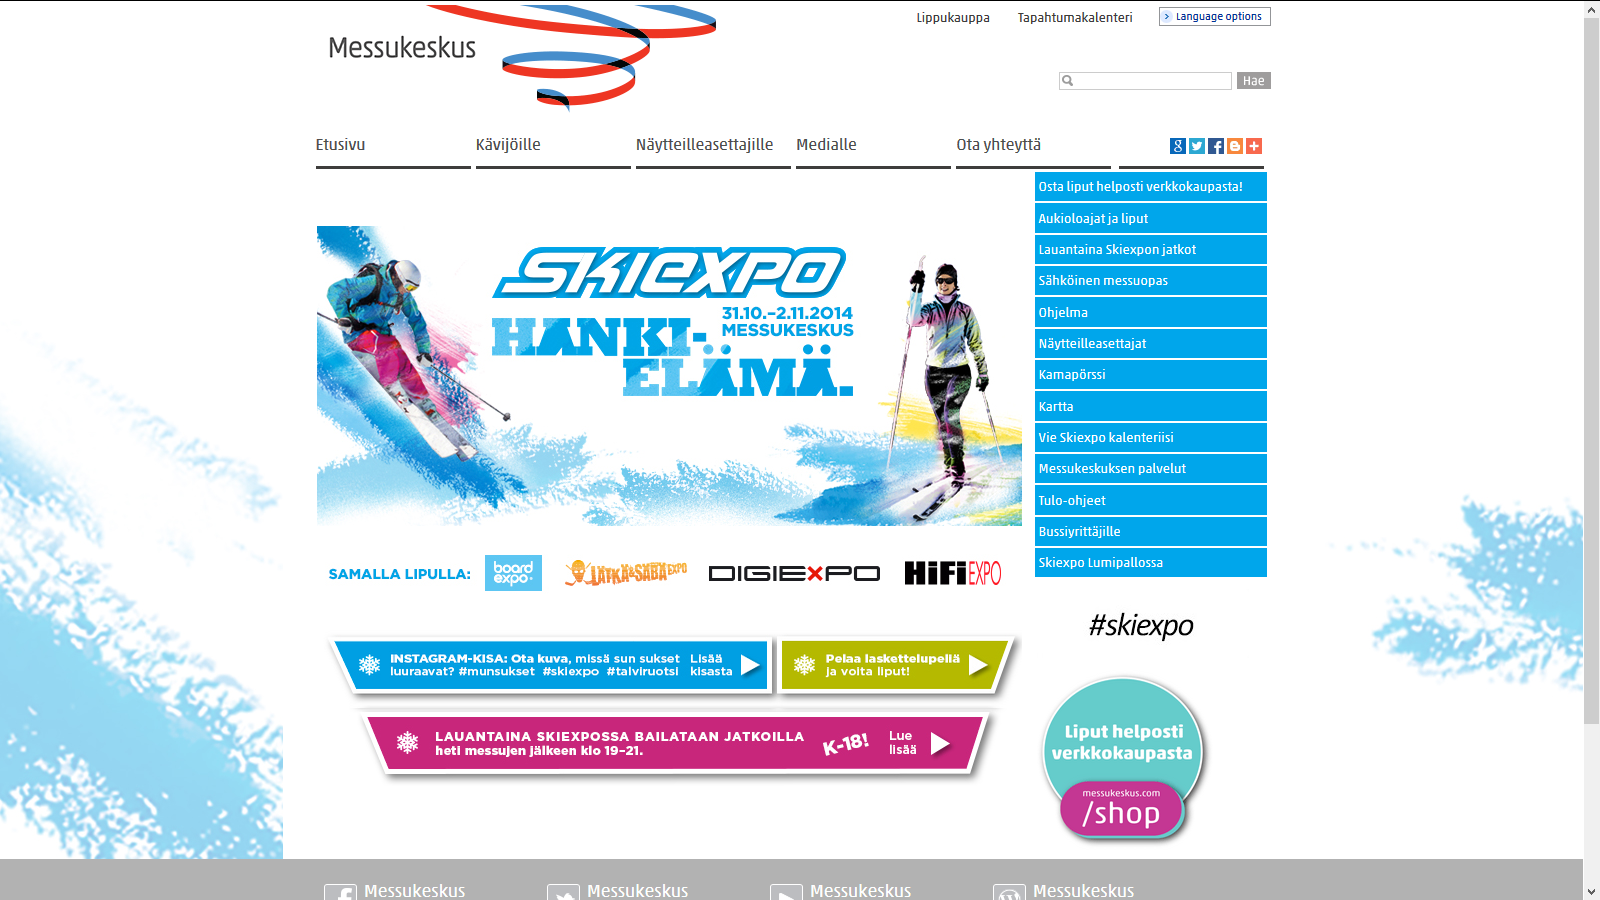 http://www.messukeskus.com/Sites1/Skiexpo/en/Pages/default.aspx